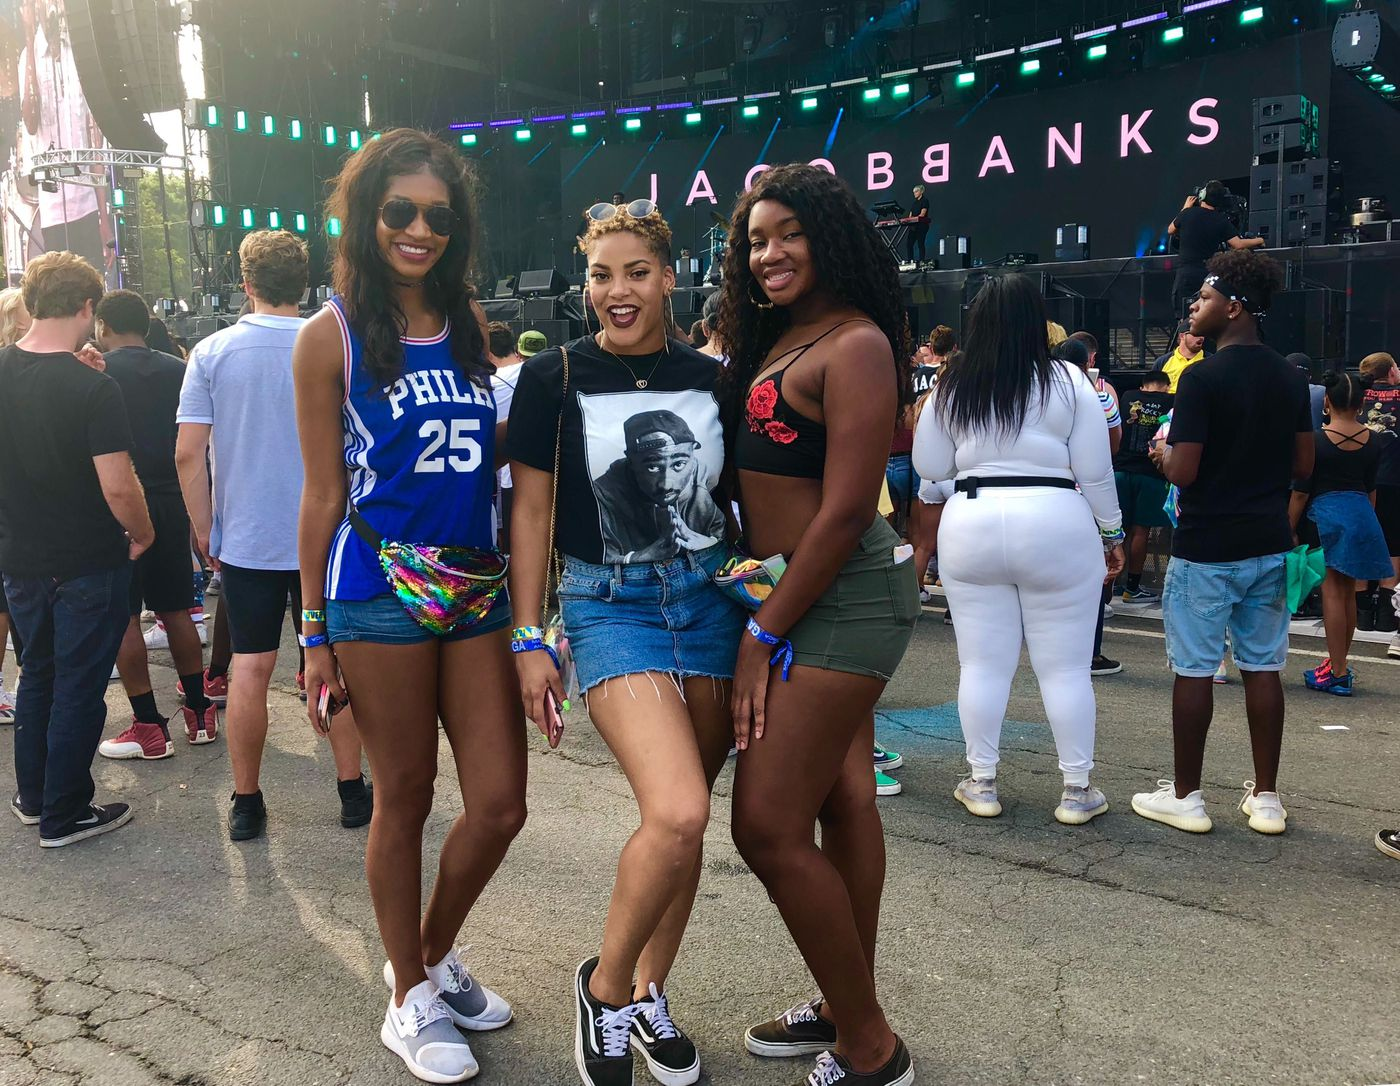 Janine Simmons, Judgette Moen, Evalyn Hart (left to right). Hart and Simmons are from Philly, Moen is visiting for MIA. The trio came for Travis Scott and Lizzo but Jacob Banks' act was a pleasant surprise.